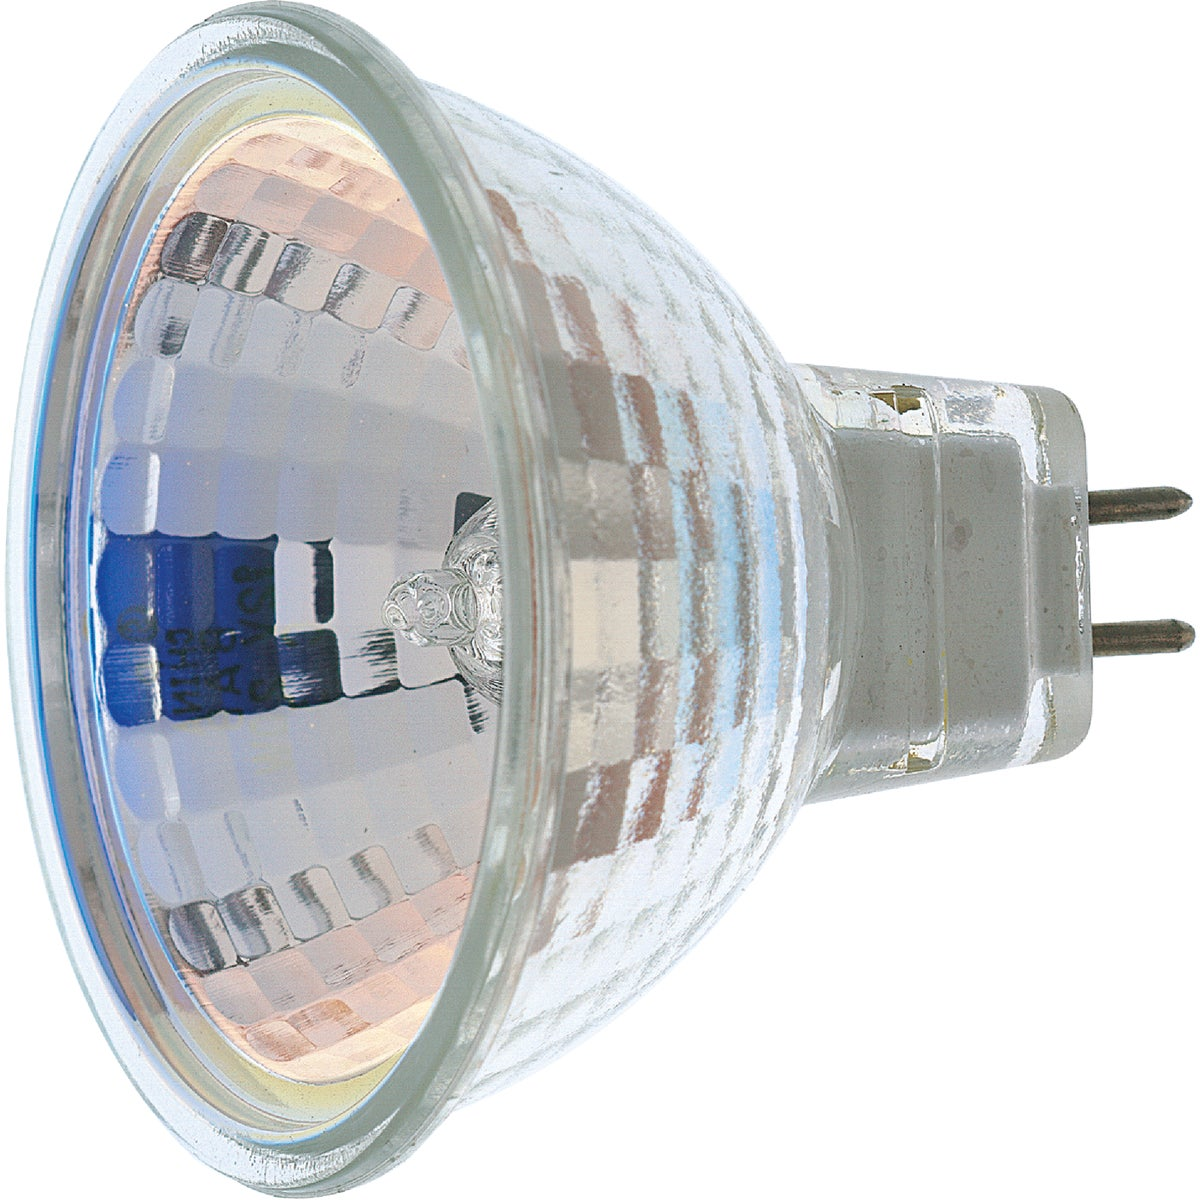 50W GU7.9/8.0 MR16 BULB - 04725 by Westinghouse Lightng